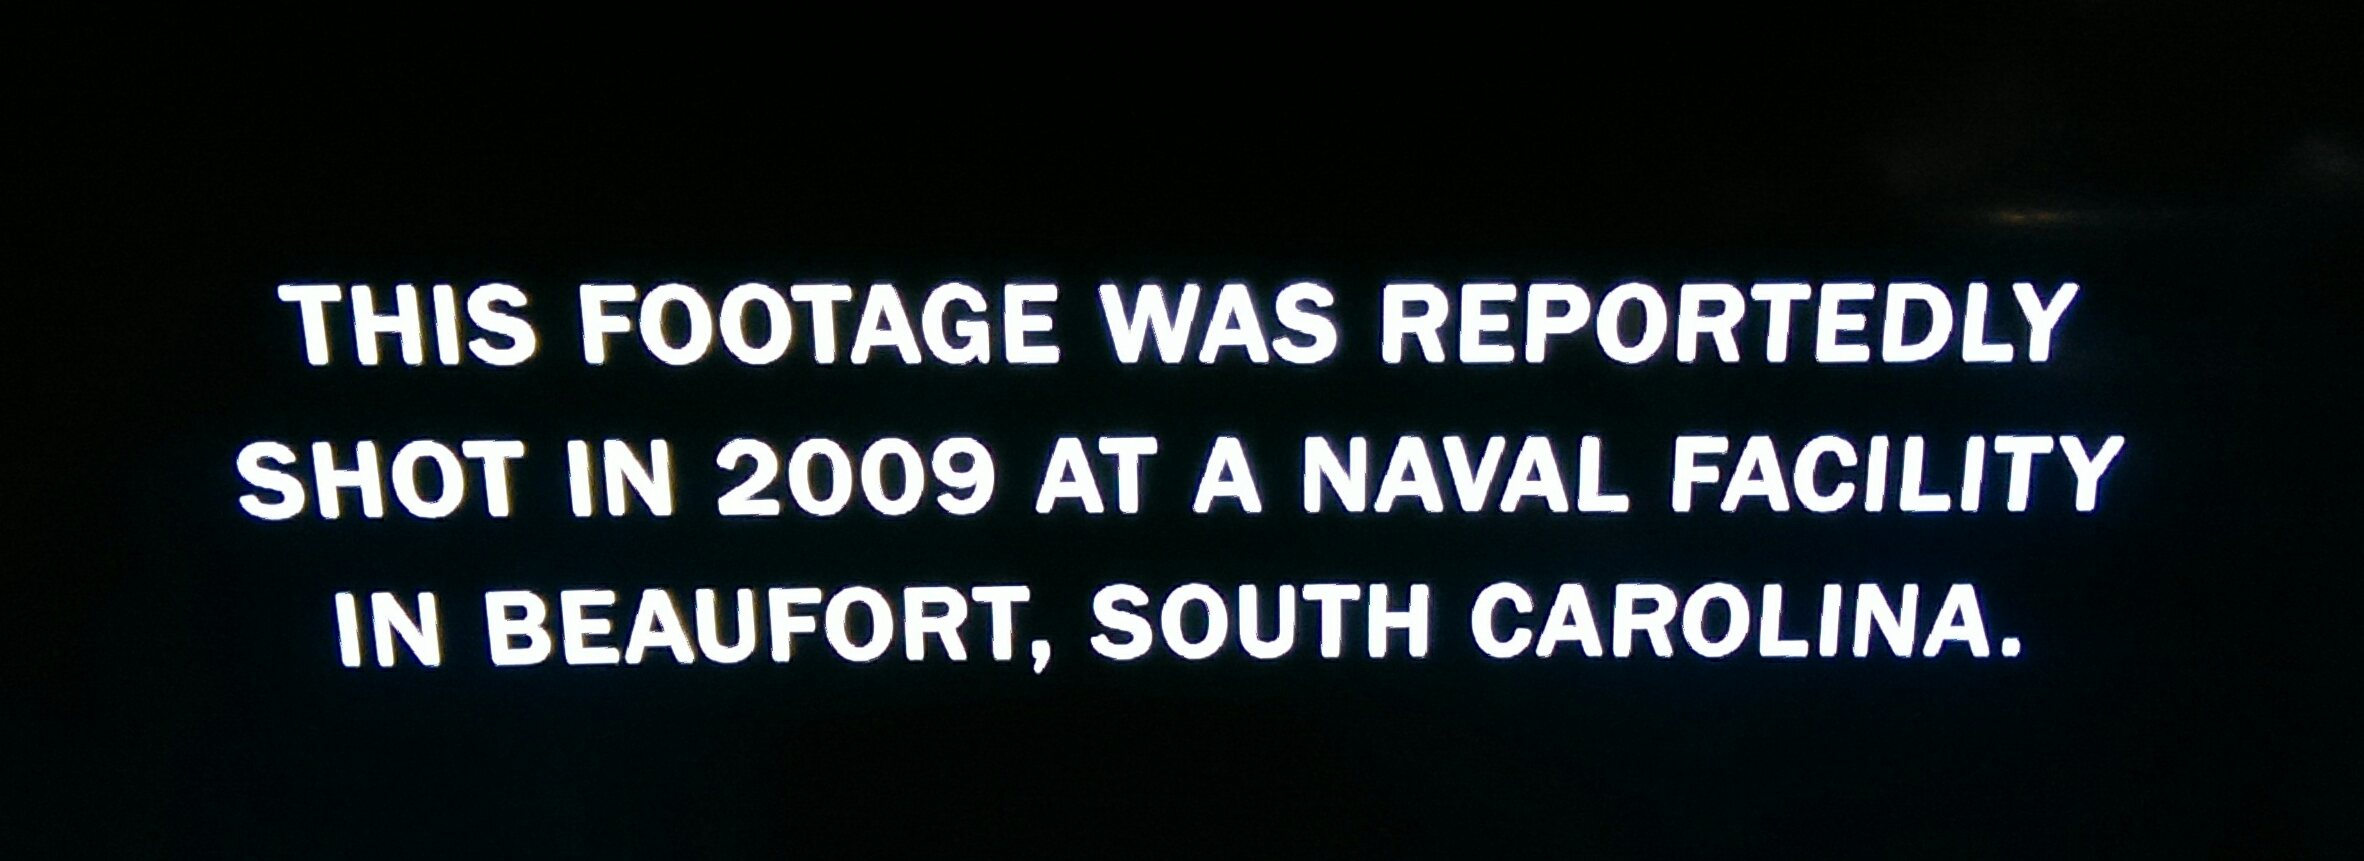 """Image with the text """"This footage was reportedly shot in 2009 at a Naval facility in Beaufort, South Carolina"""""""